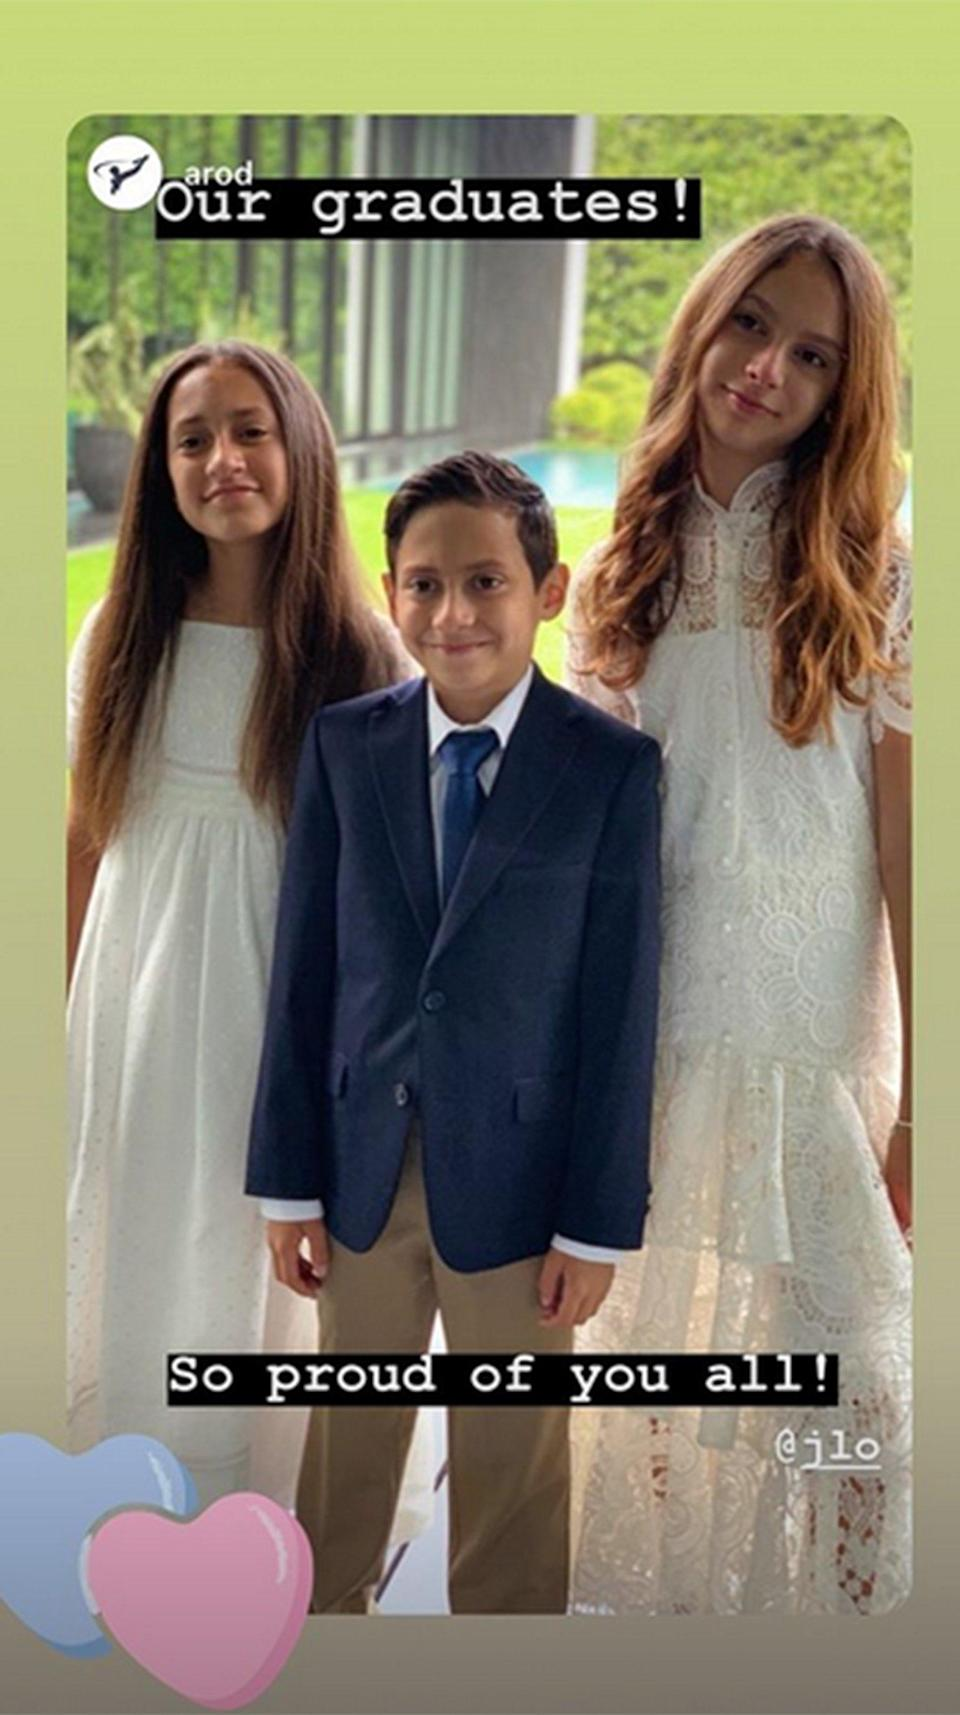 """Jennifer Lopez's twins Emme and Max and Alex Rodriguez's youngest daughter Ella are moving on up to the sixth grade. Rodriguez took an Instagram snap of all three kids and added the caption: """"Our graduates! So proud of you all!"""" The delighted dad also tagged fiancée Lopez in the photo so, of course, the happy mom of twins had to repost the sweet photo on her Instagram as well."""